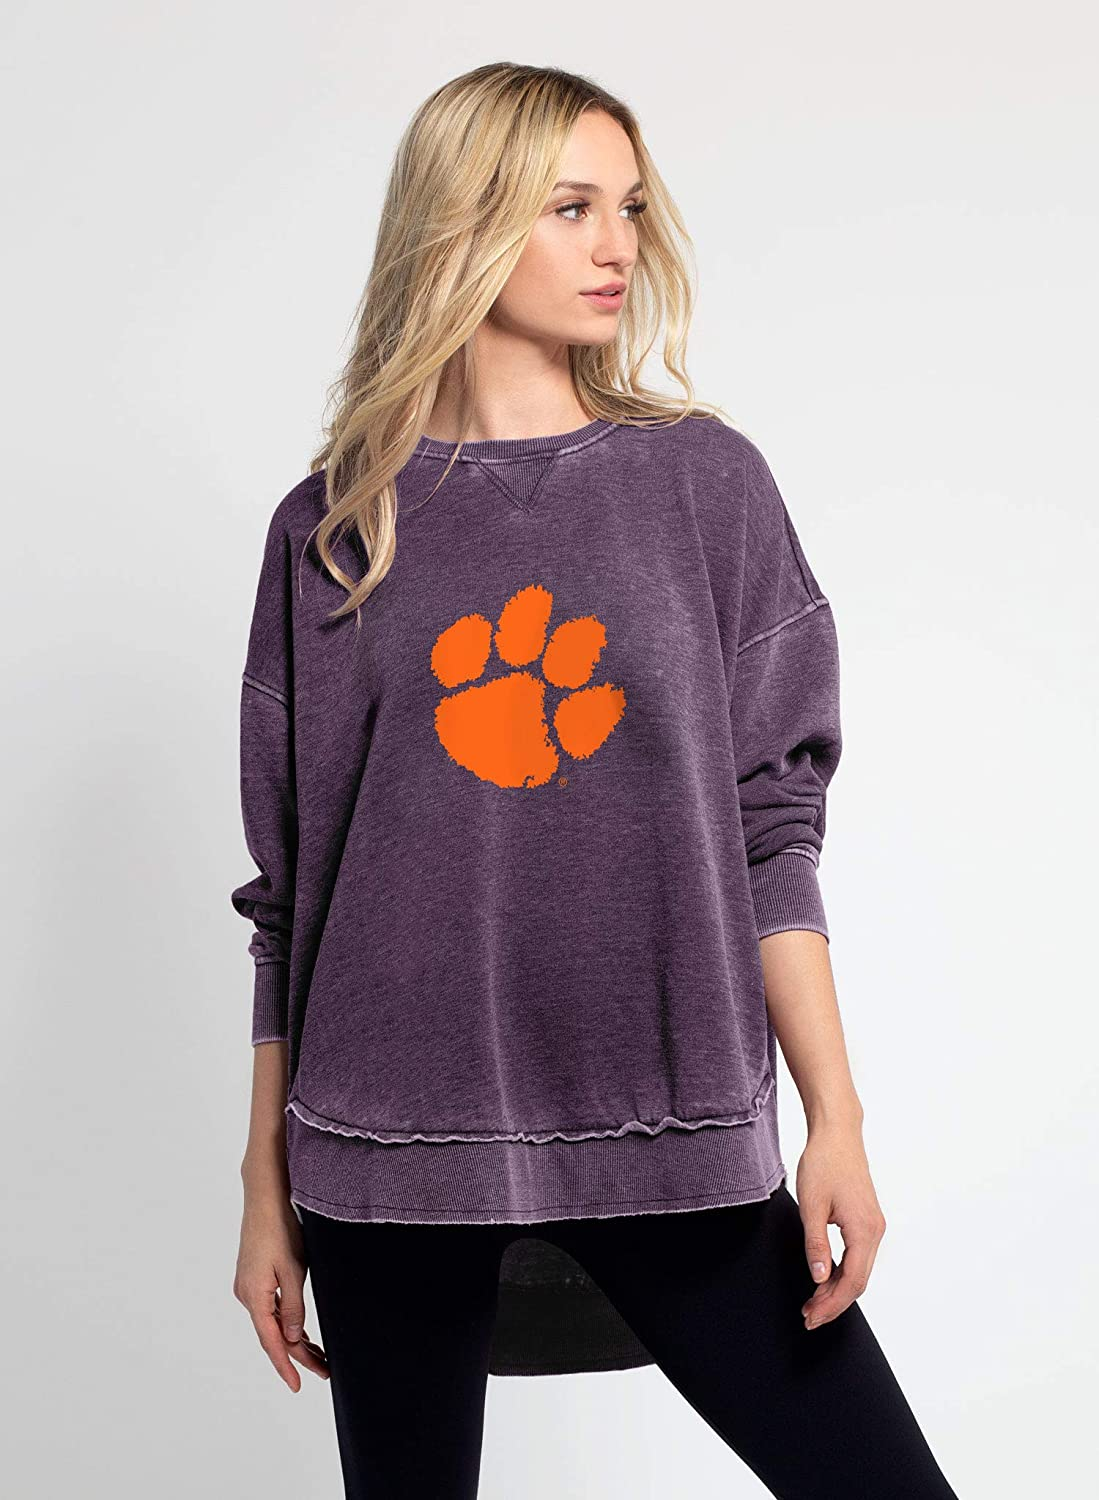 chicka-d NCAA womens Burnout Campus Pullover